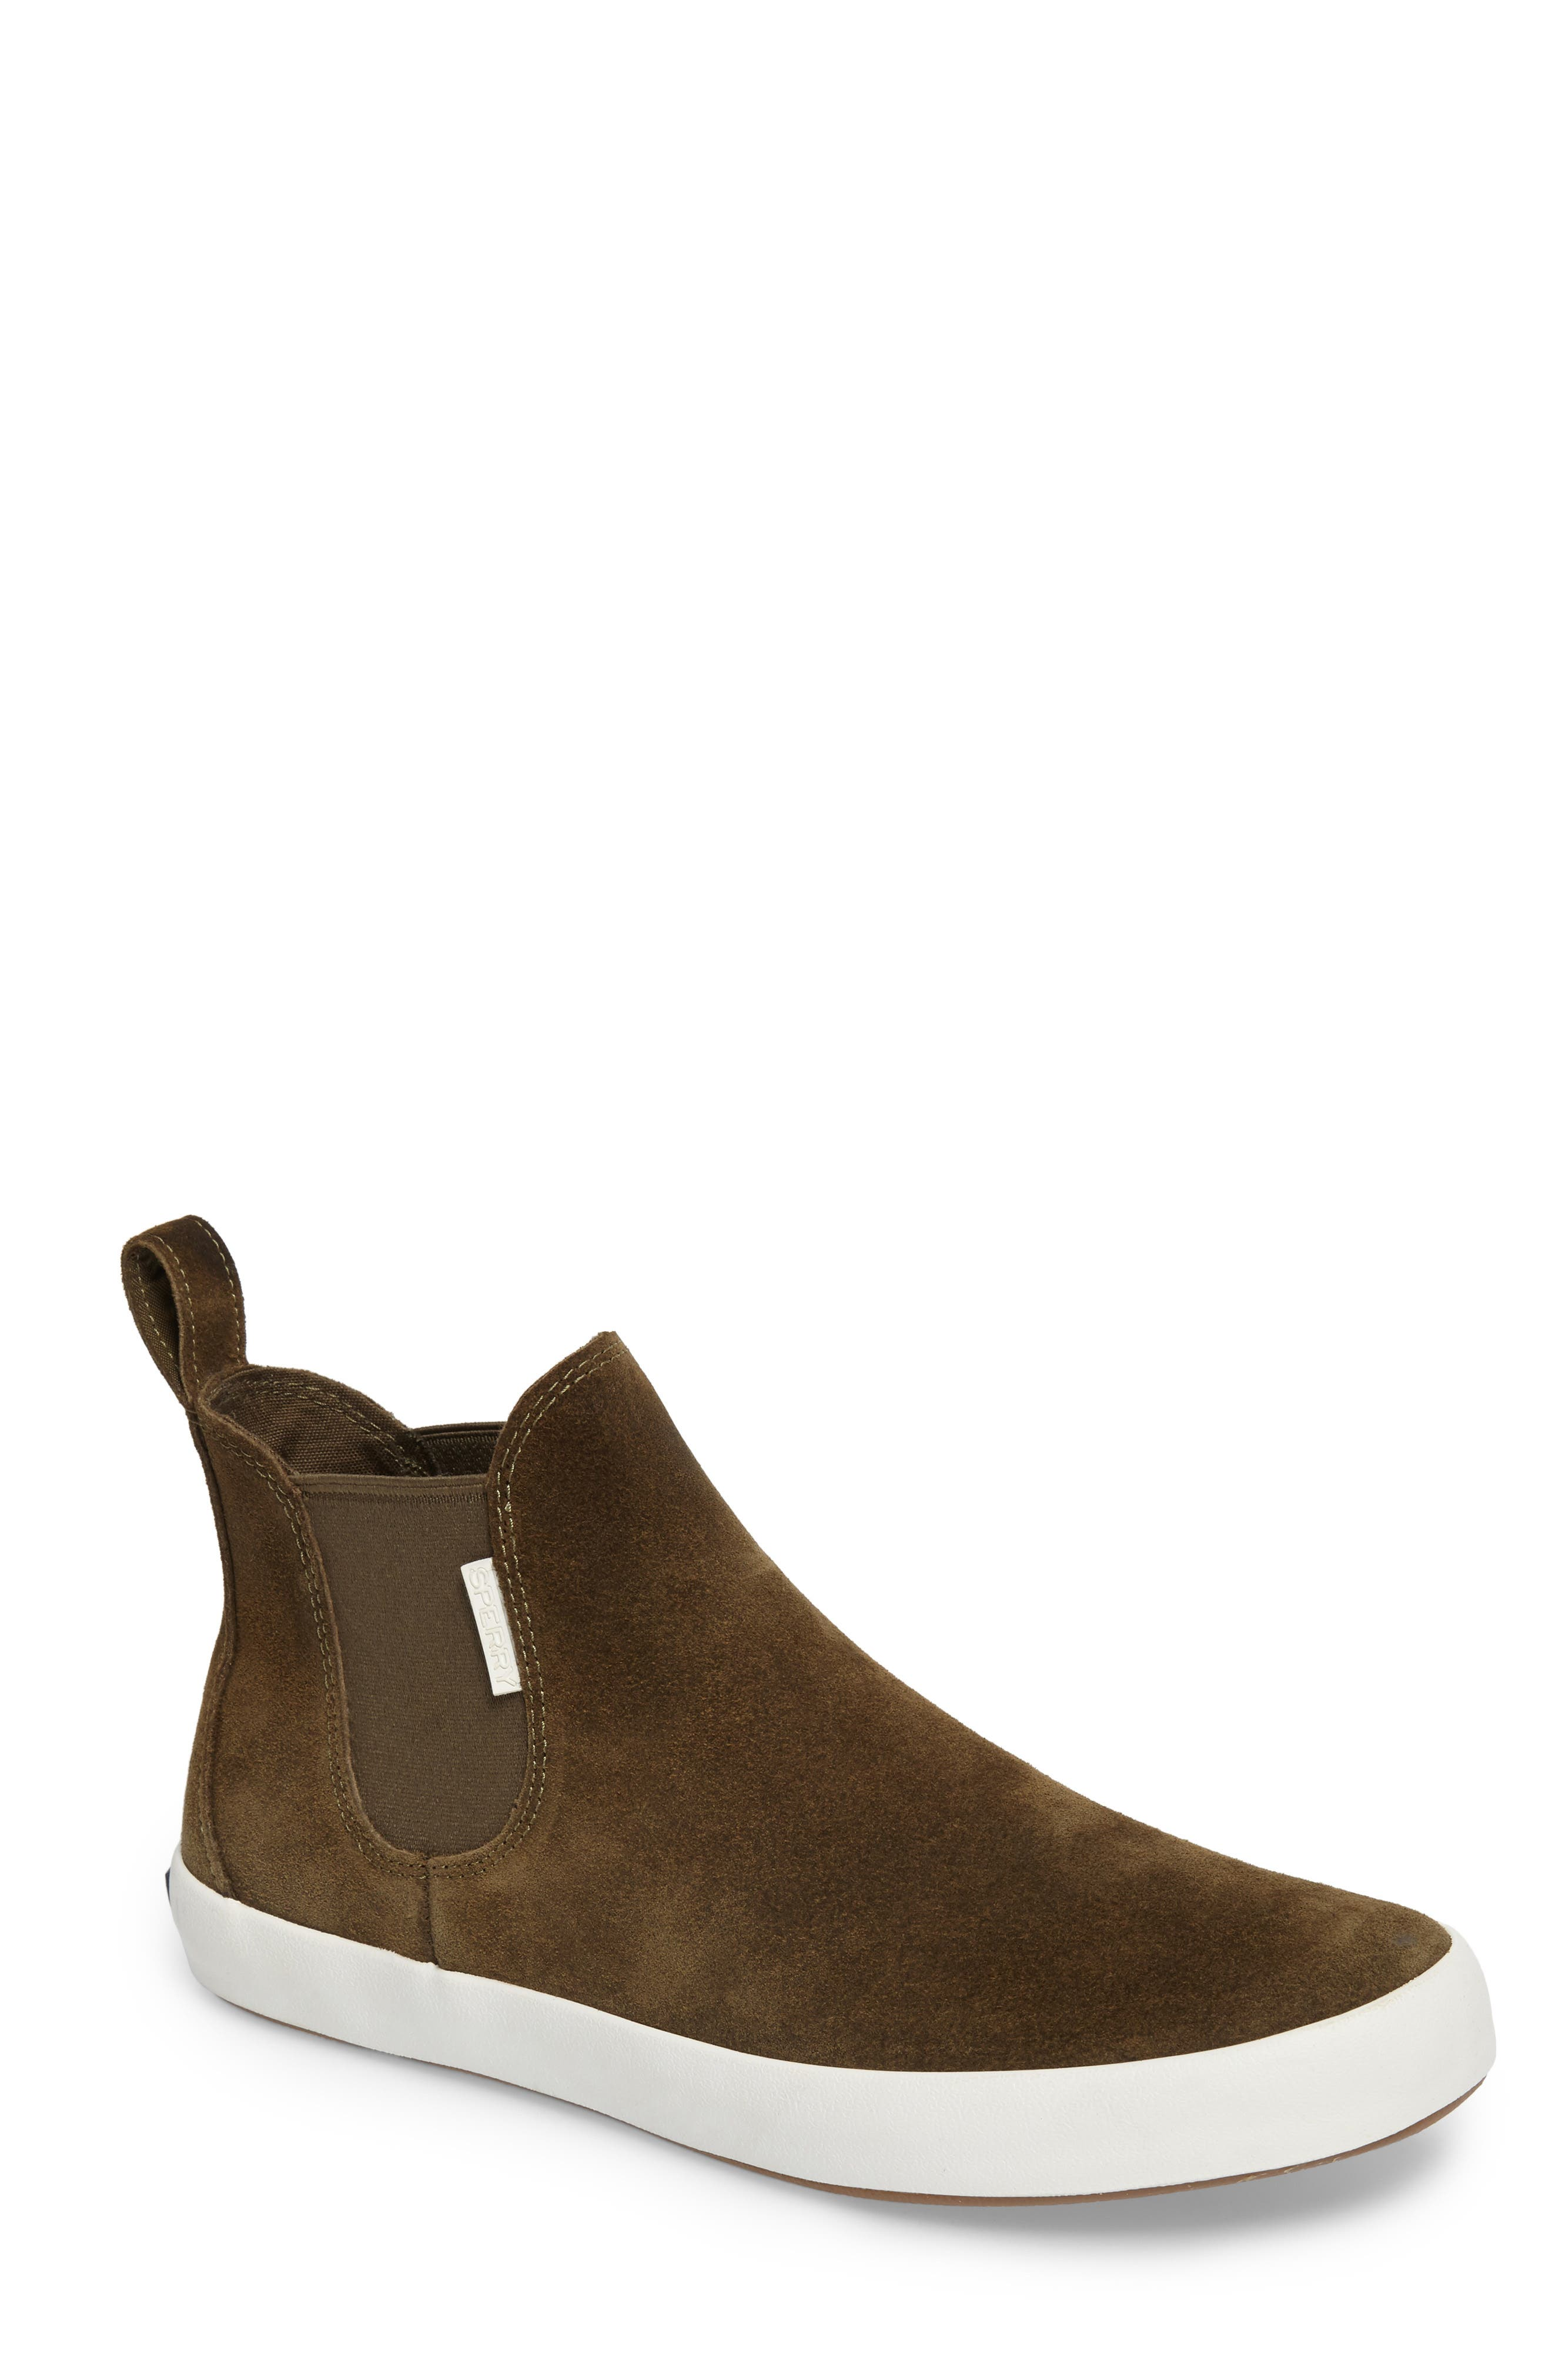 Wahoo Chelsea Sneaker Boot,                             Main thumbnail 1, color,                             Olive Leather